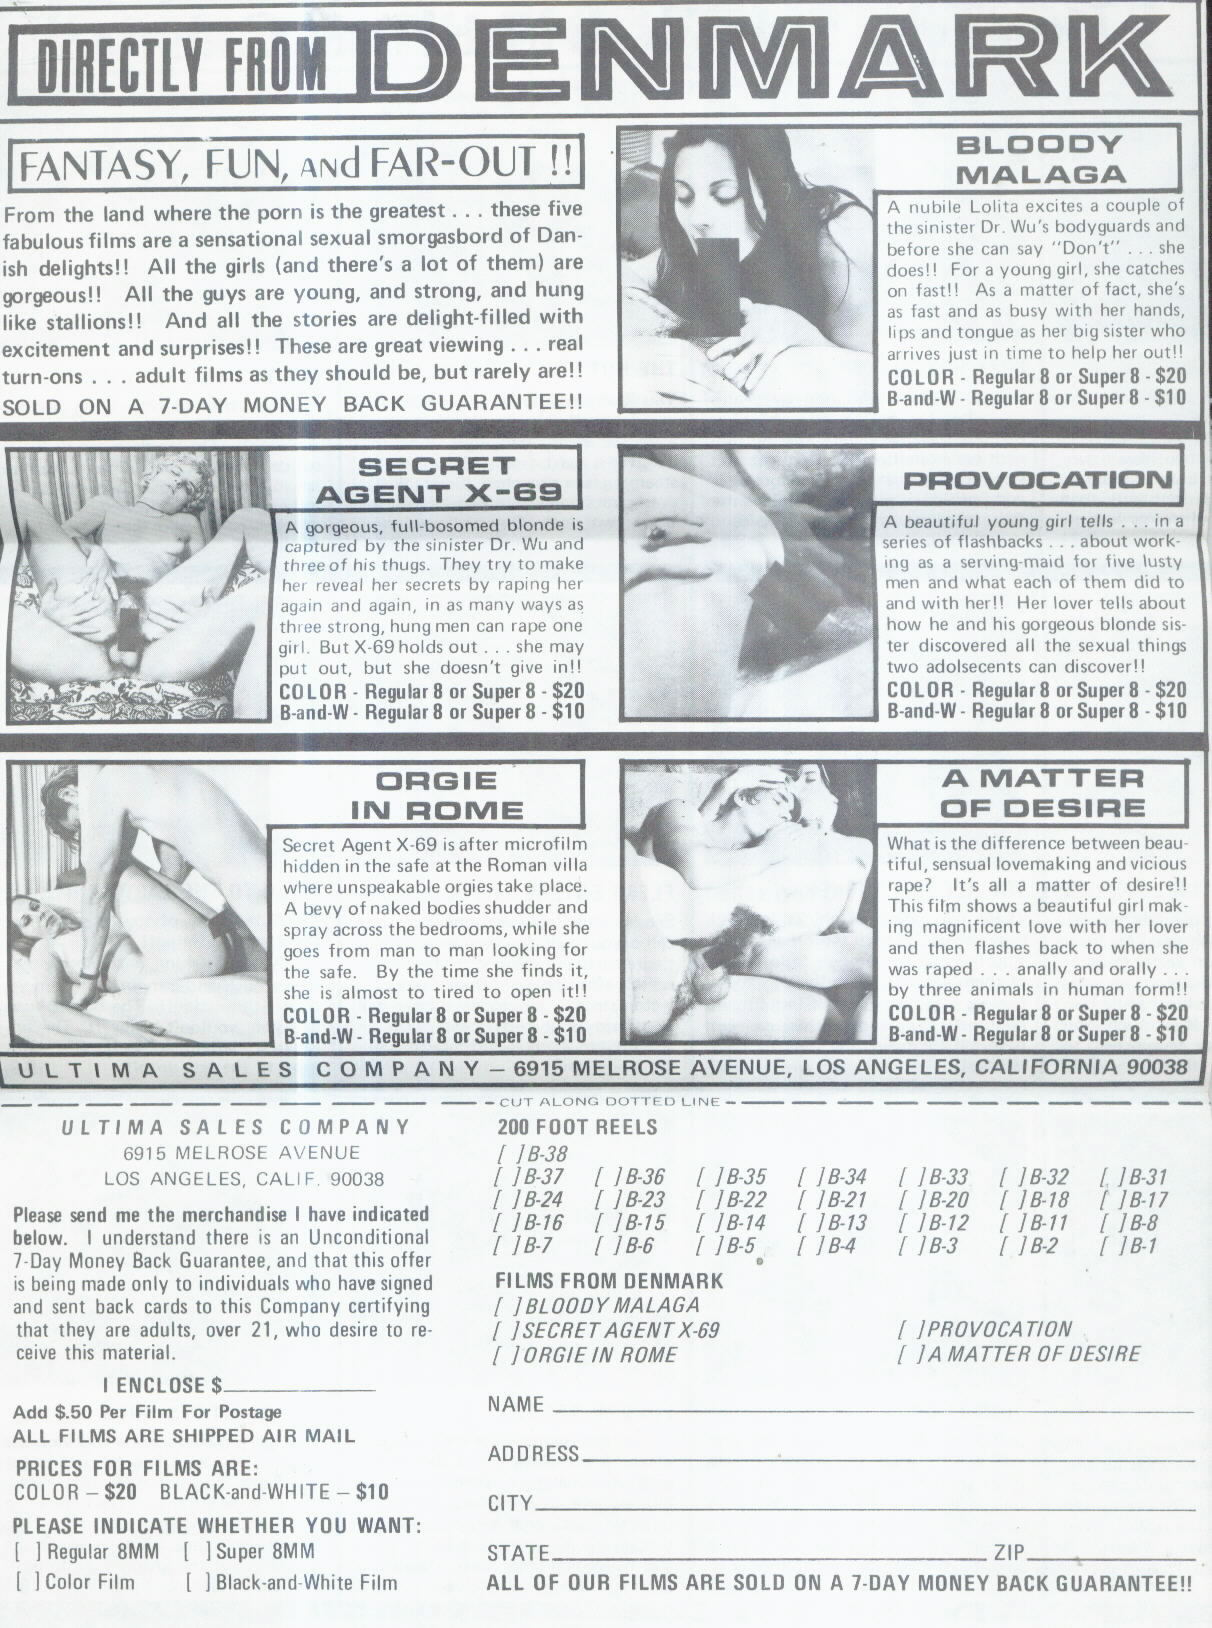 Mail order adult catalogs